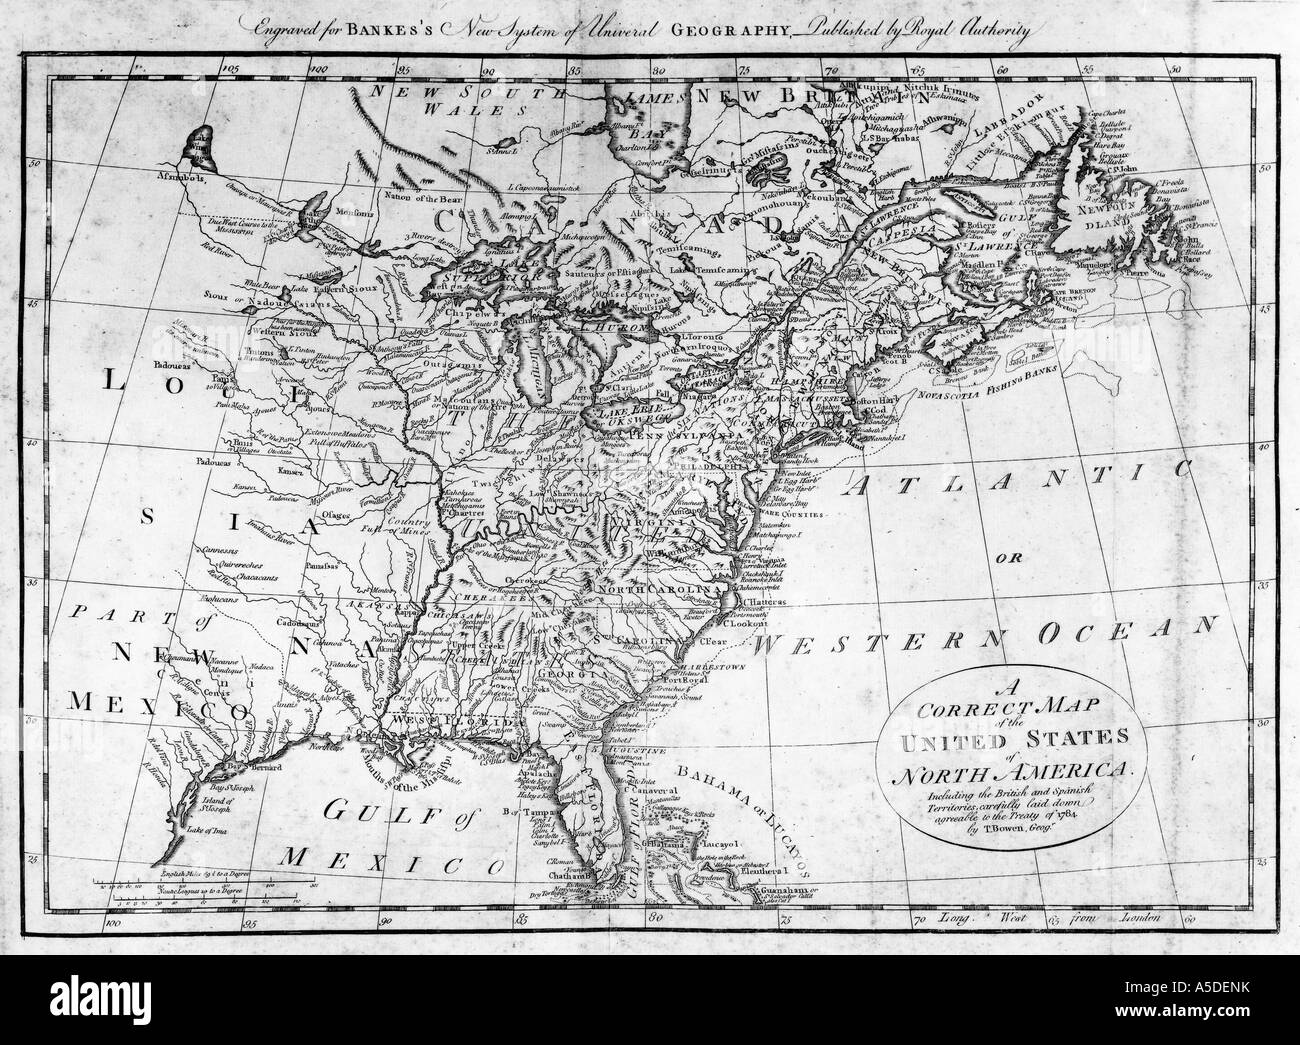 A Correct Map of the United States of North America 1784 - Stock Image